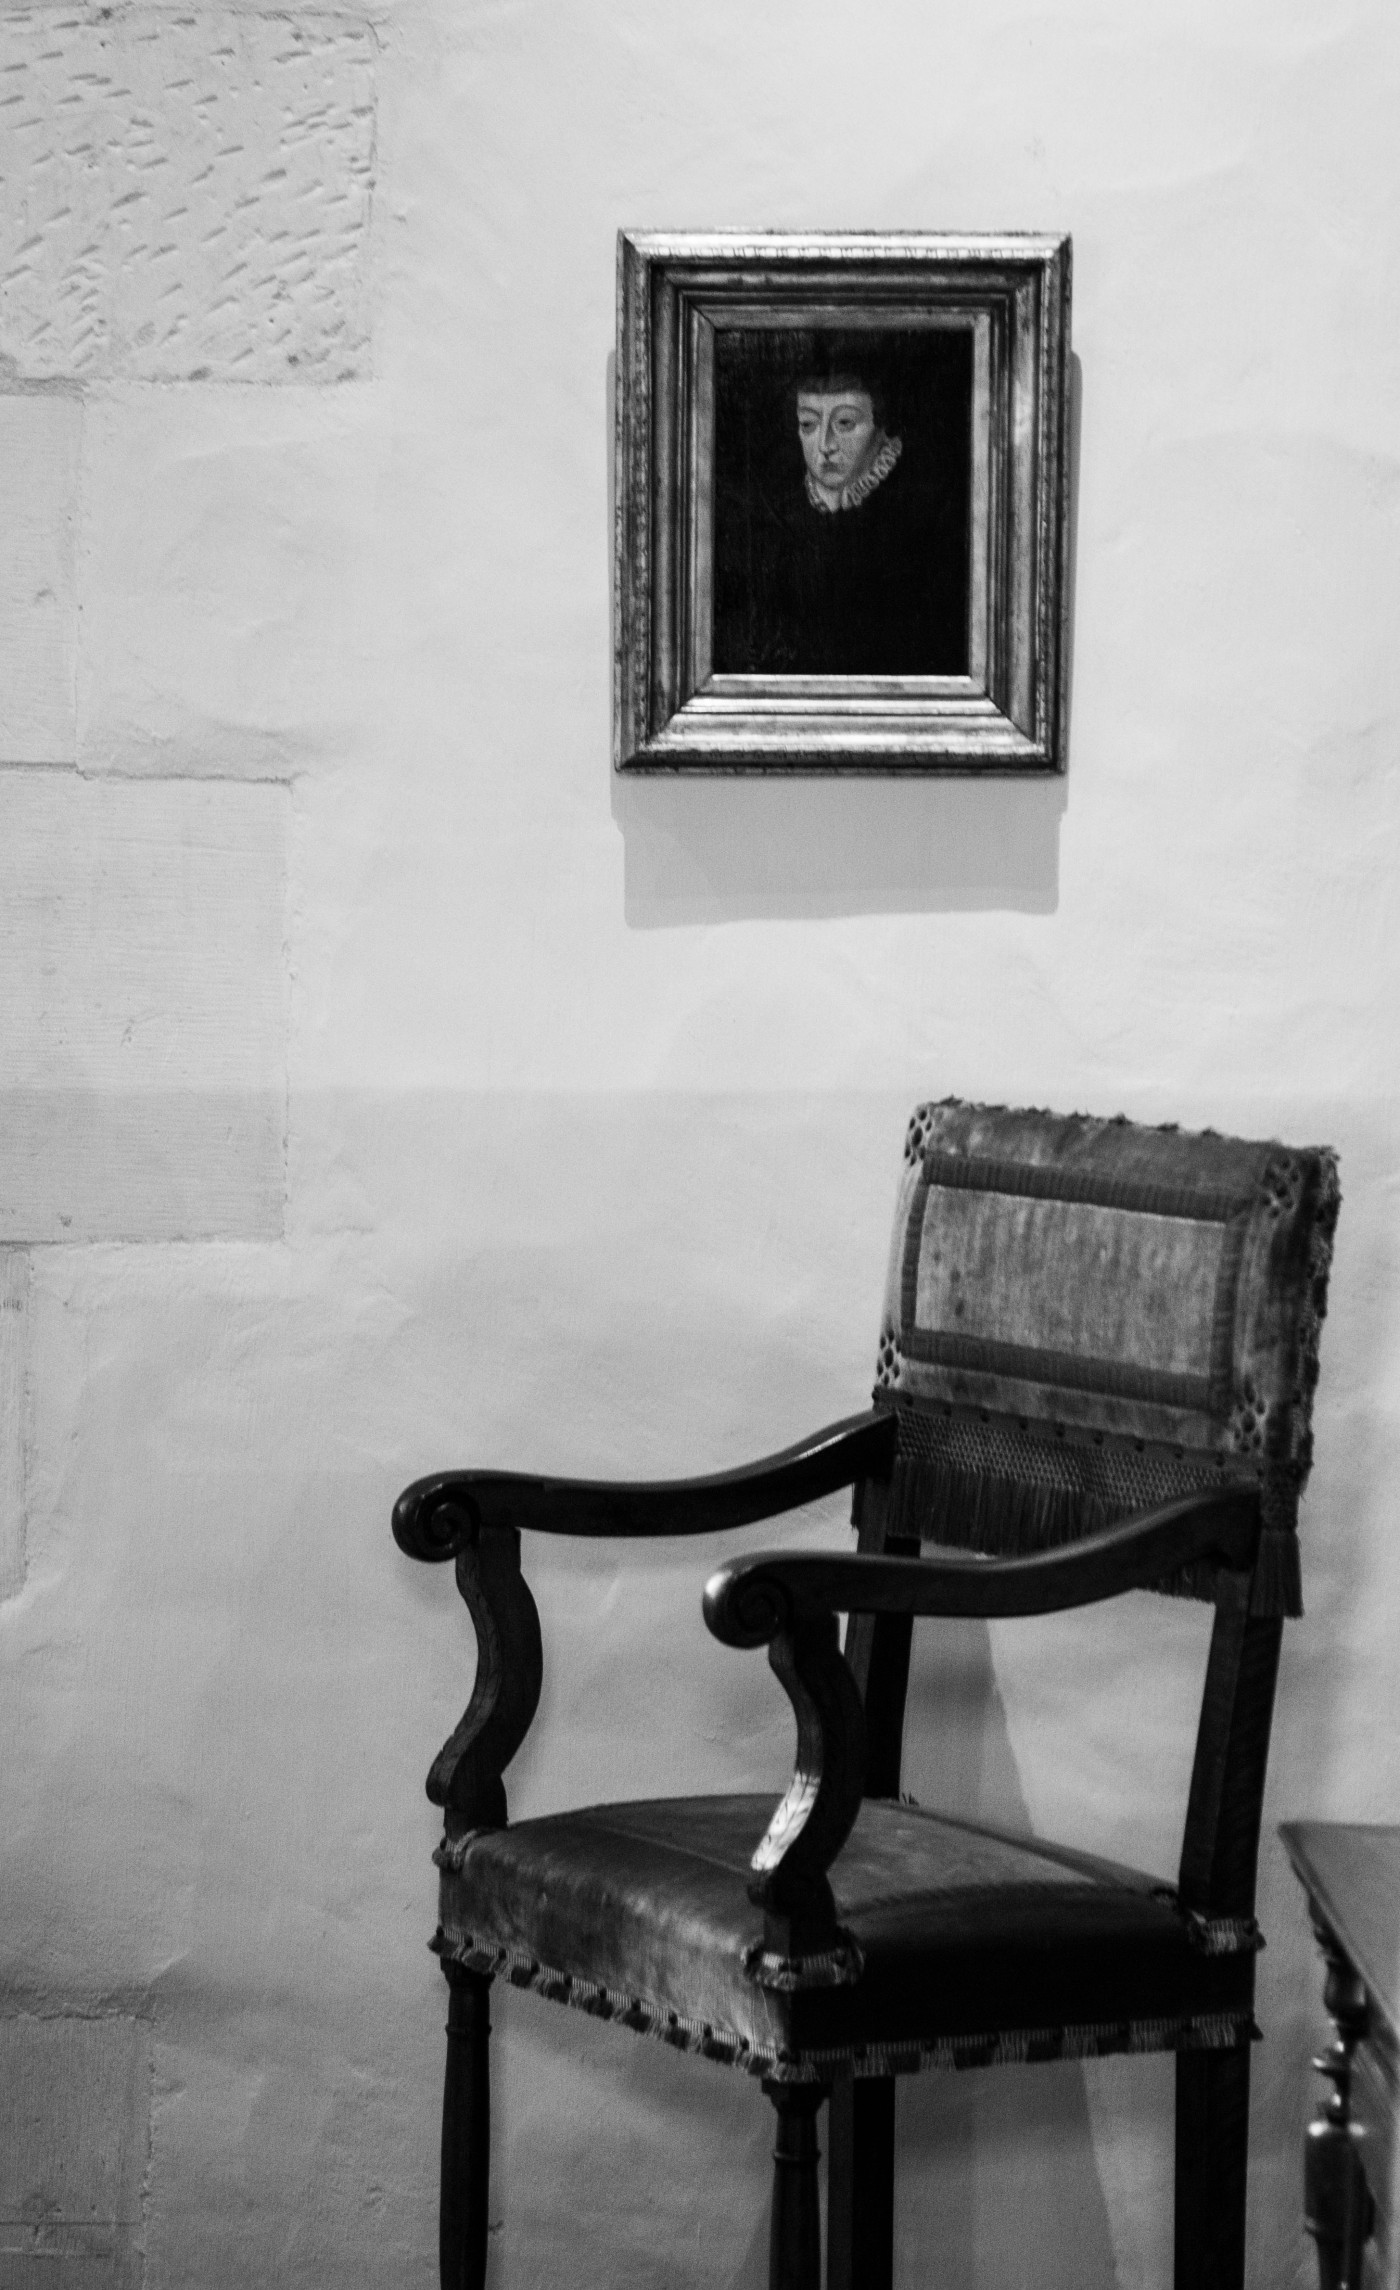 Black and white chair photography - Black And White Chair Photography 18